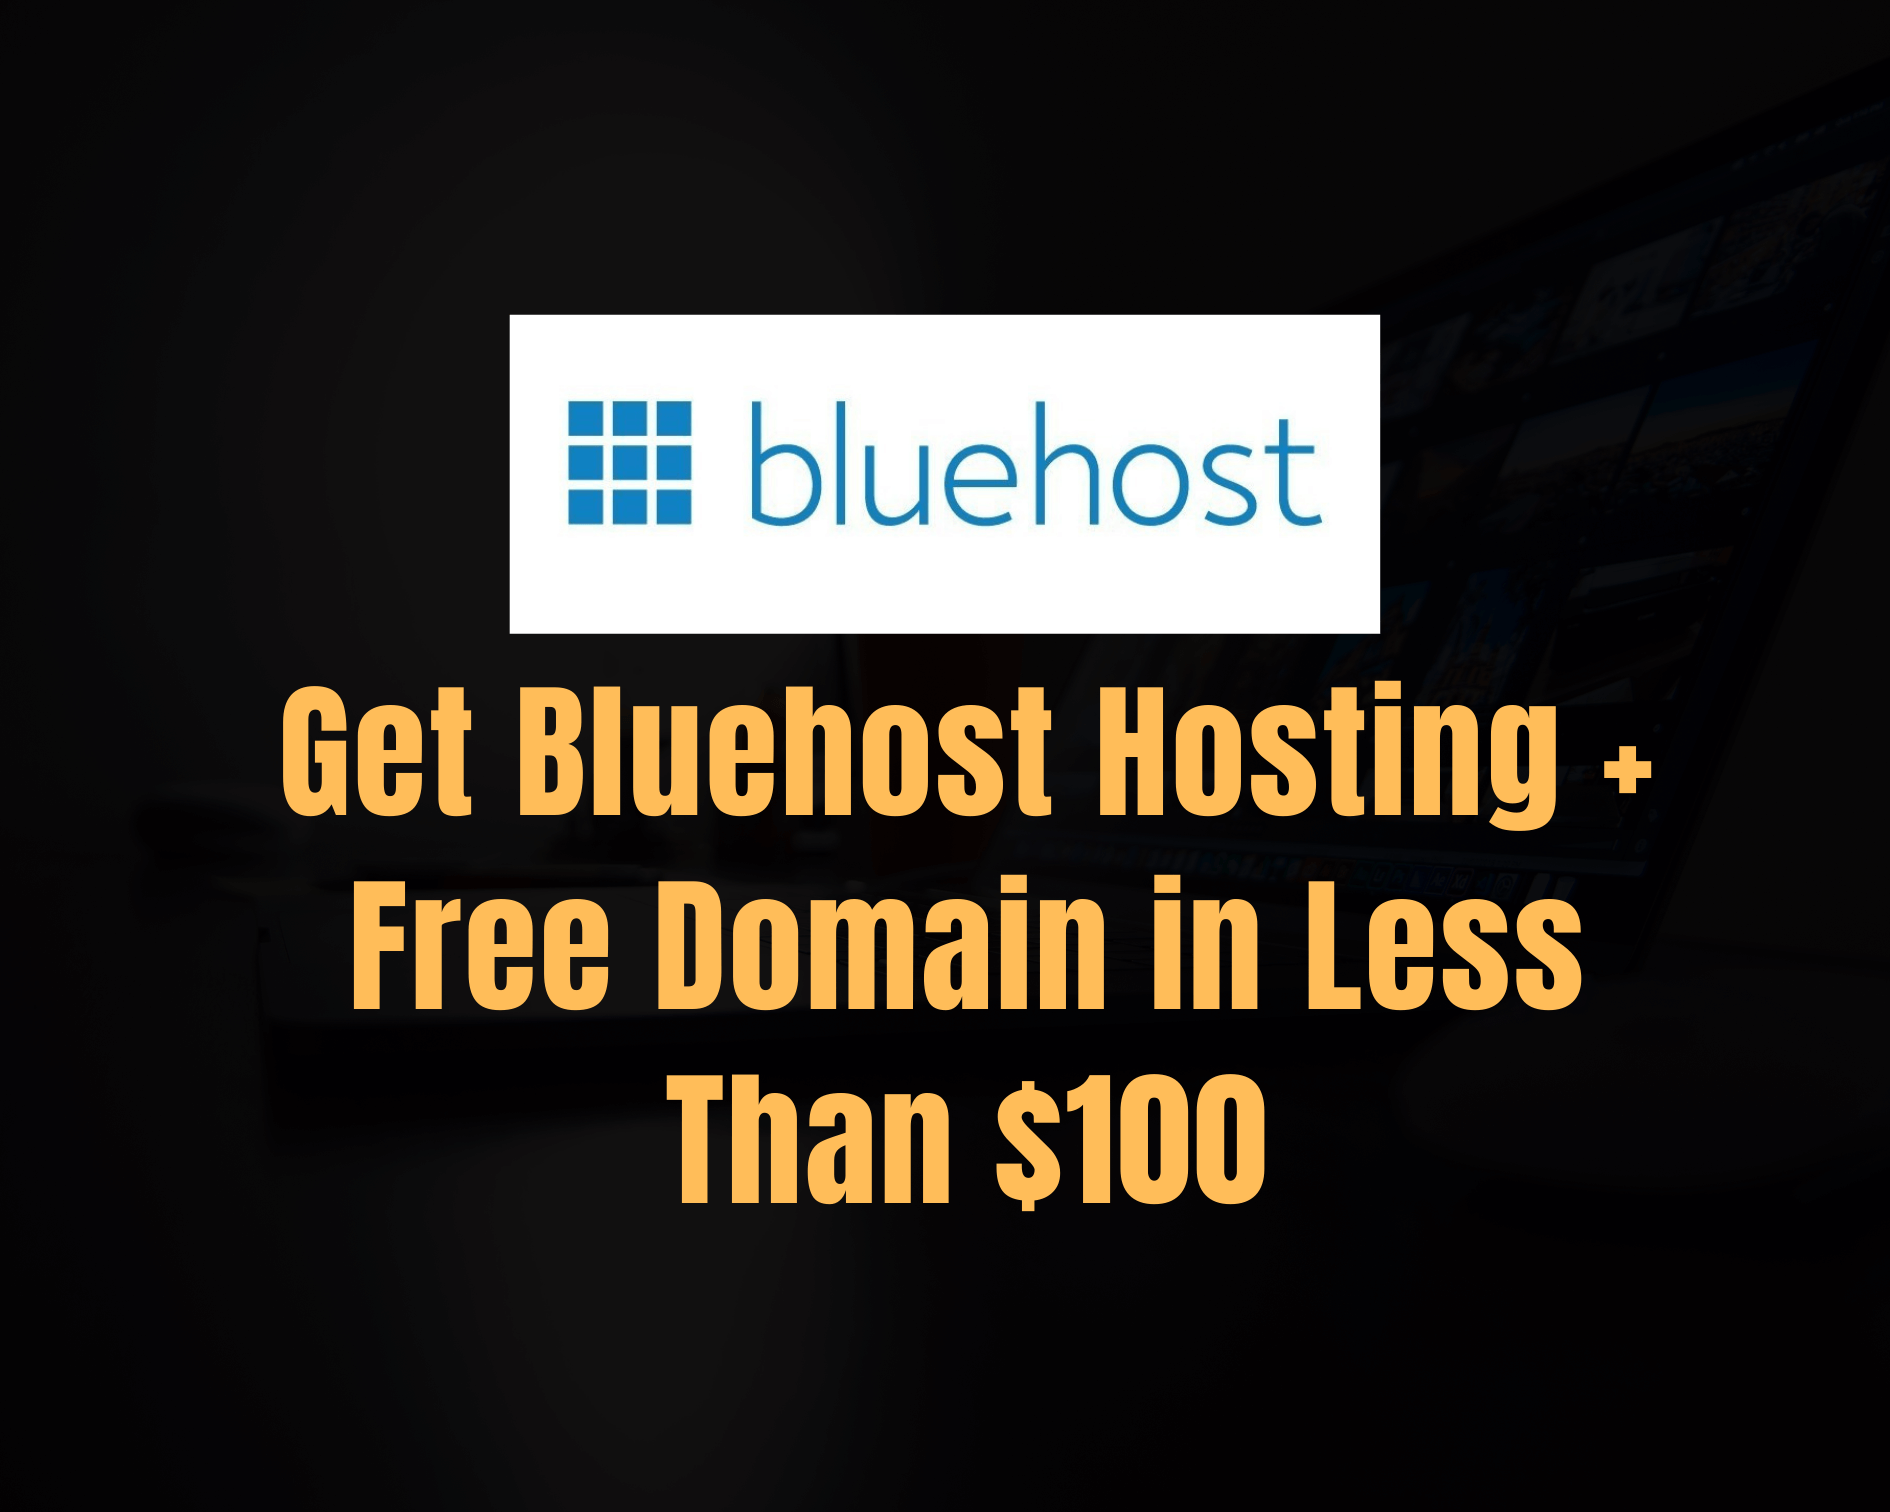 Get Bluehost Hosting with-Free Domain Less Than $100